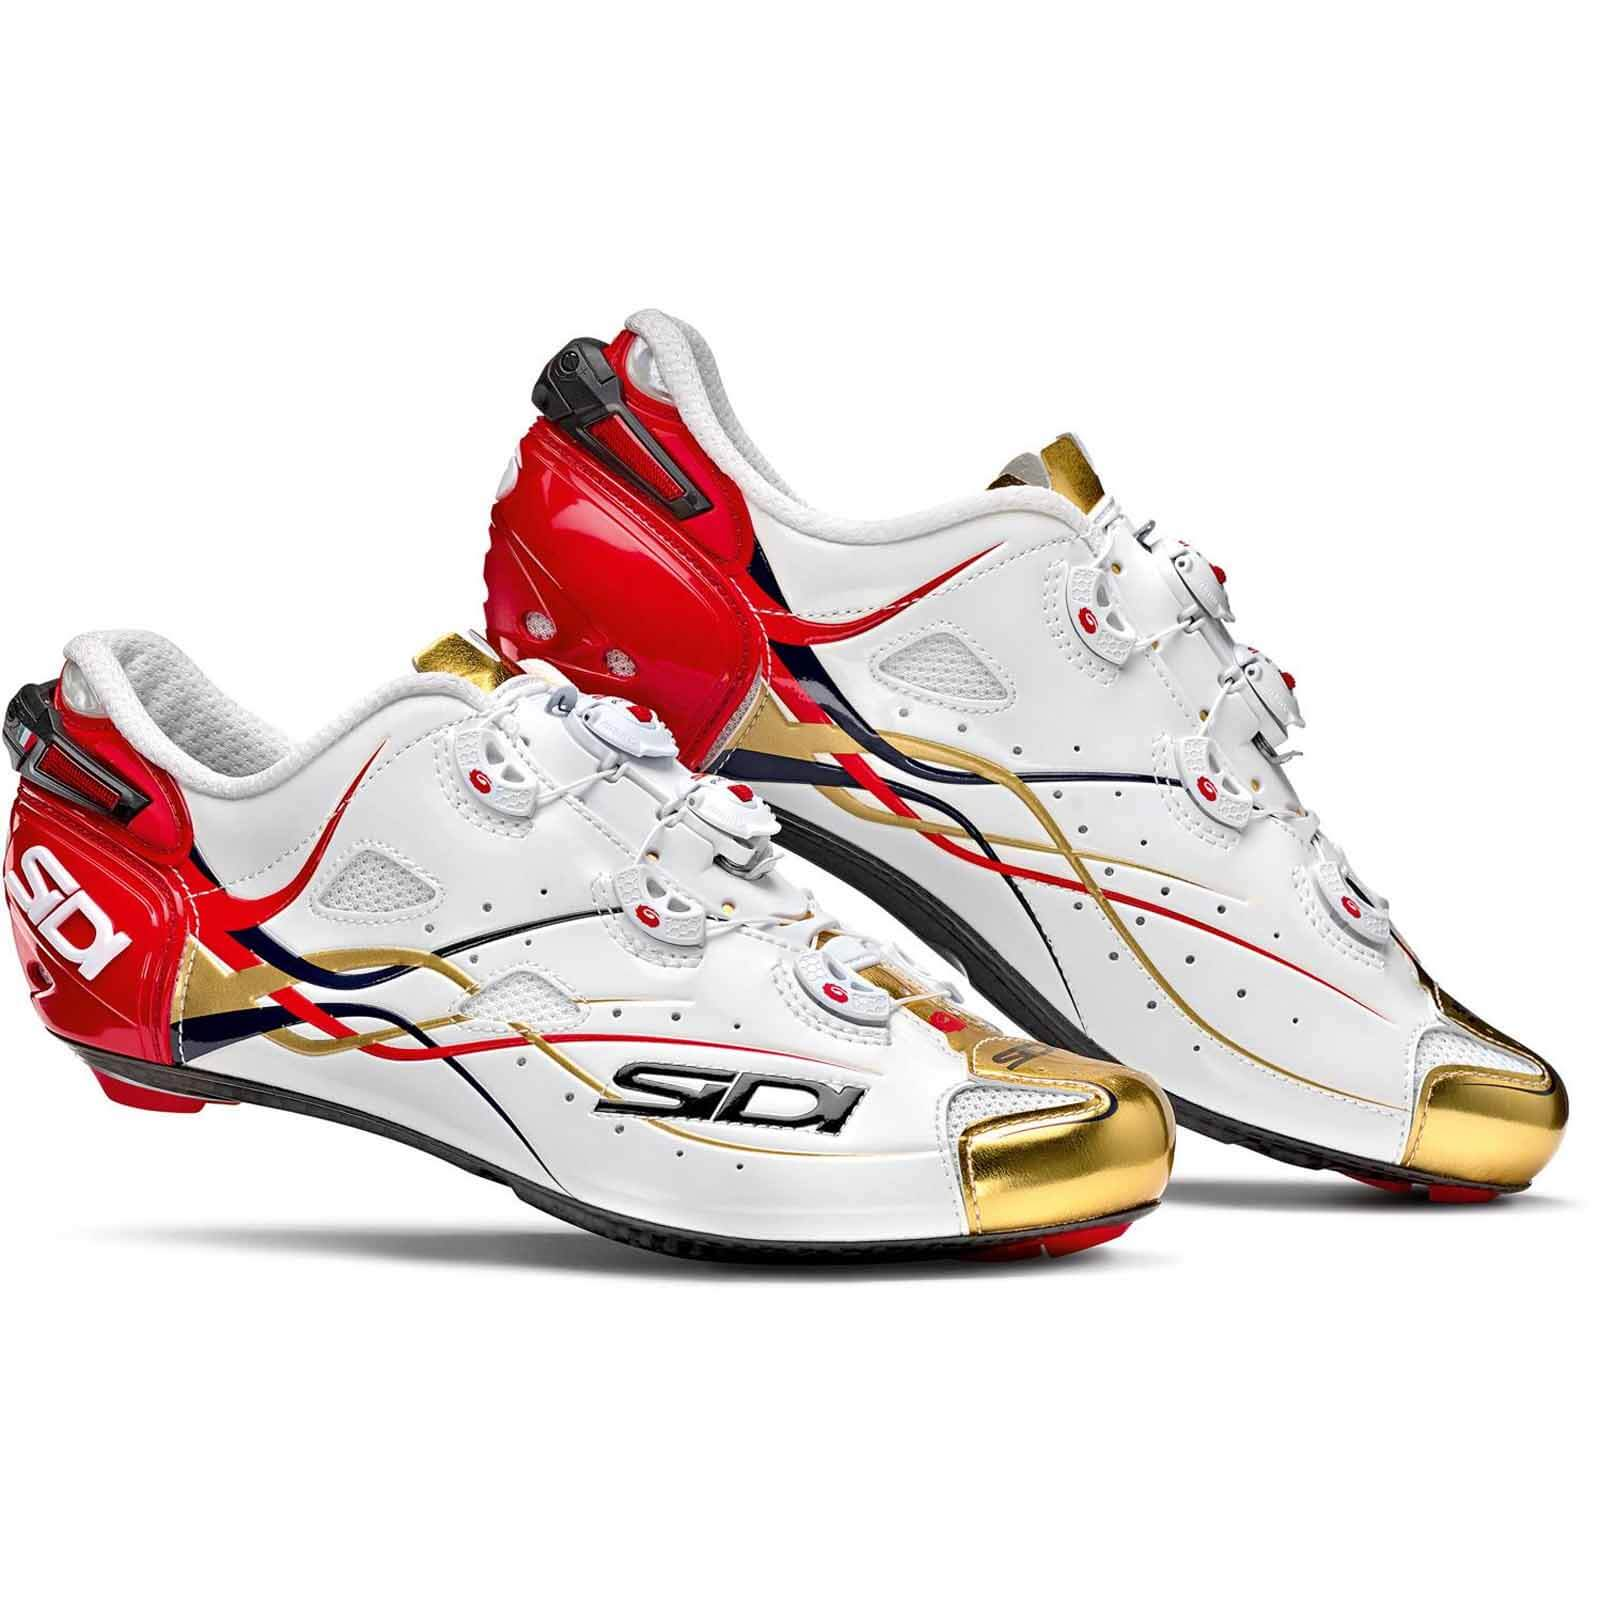 Sidi Shot Team Bahrain Carbon Cycling Shoes - White/Gold/Red